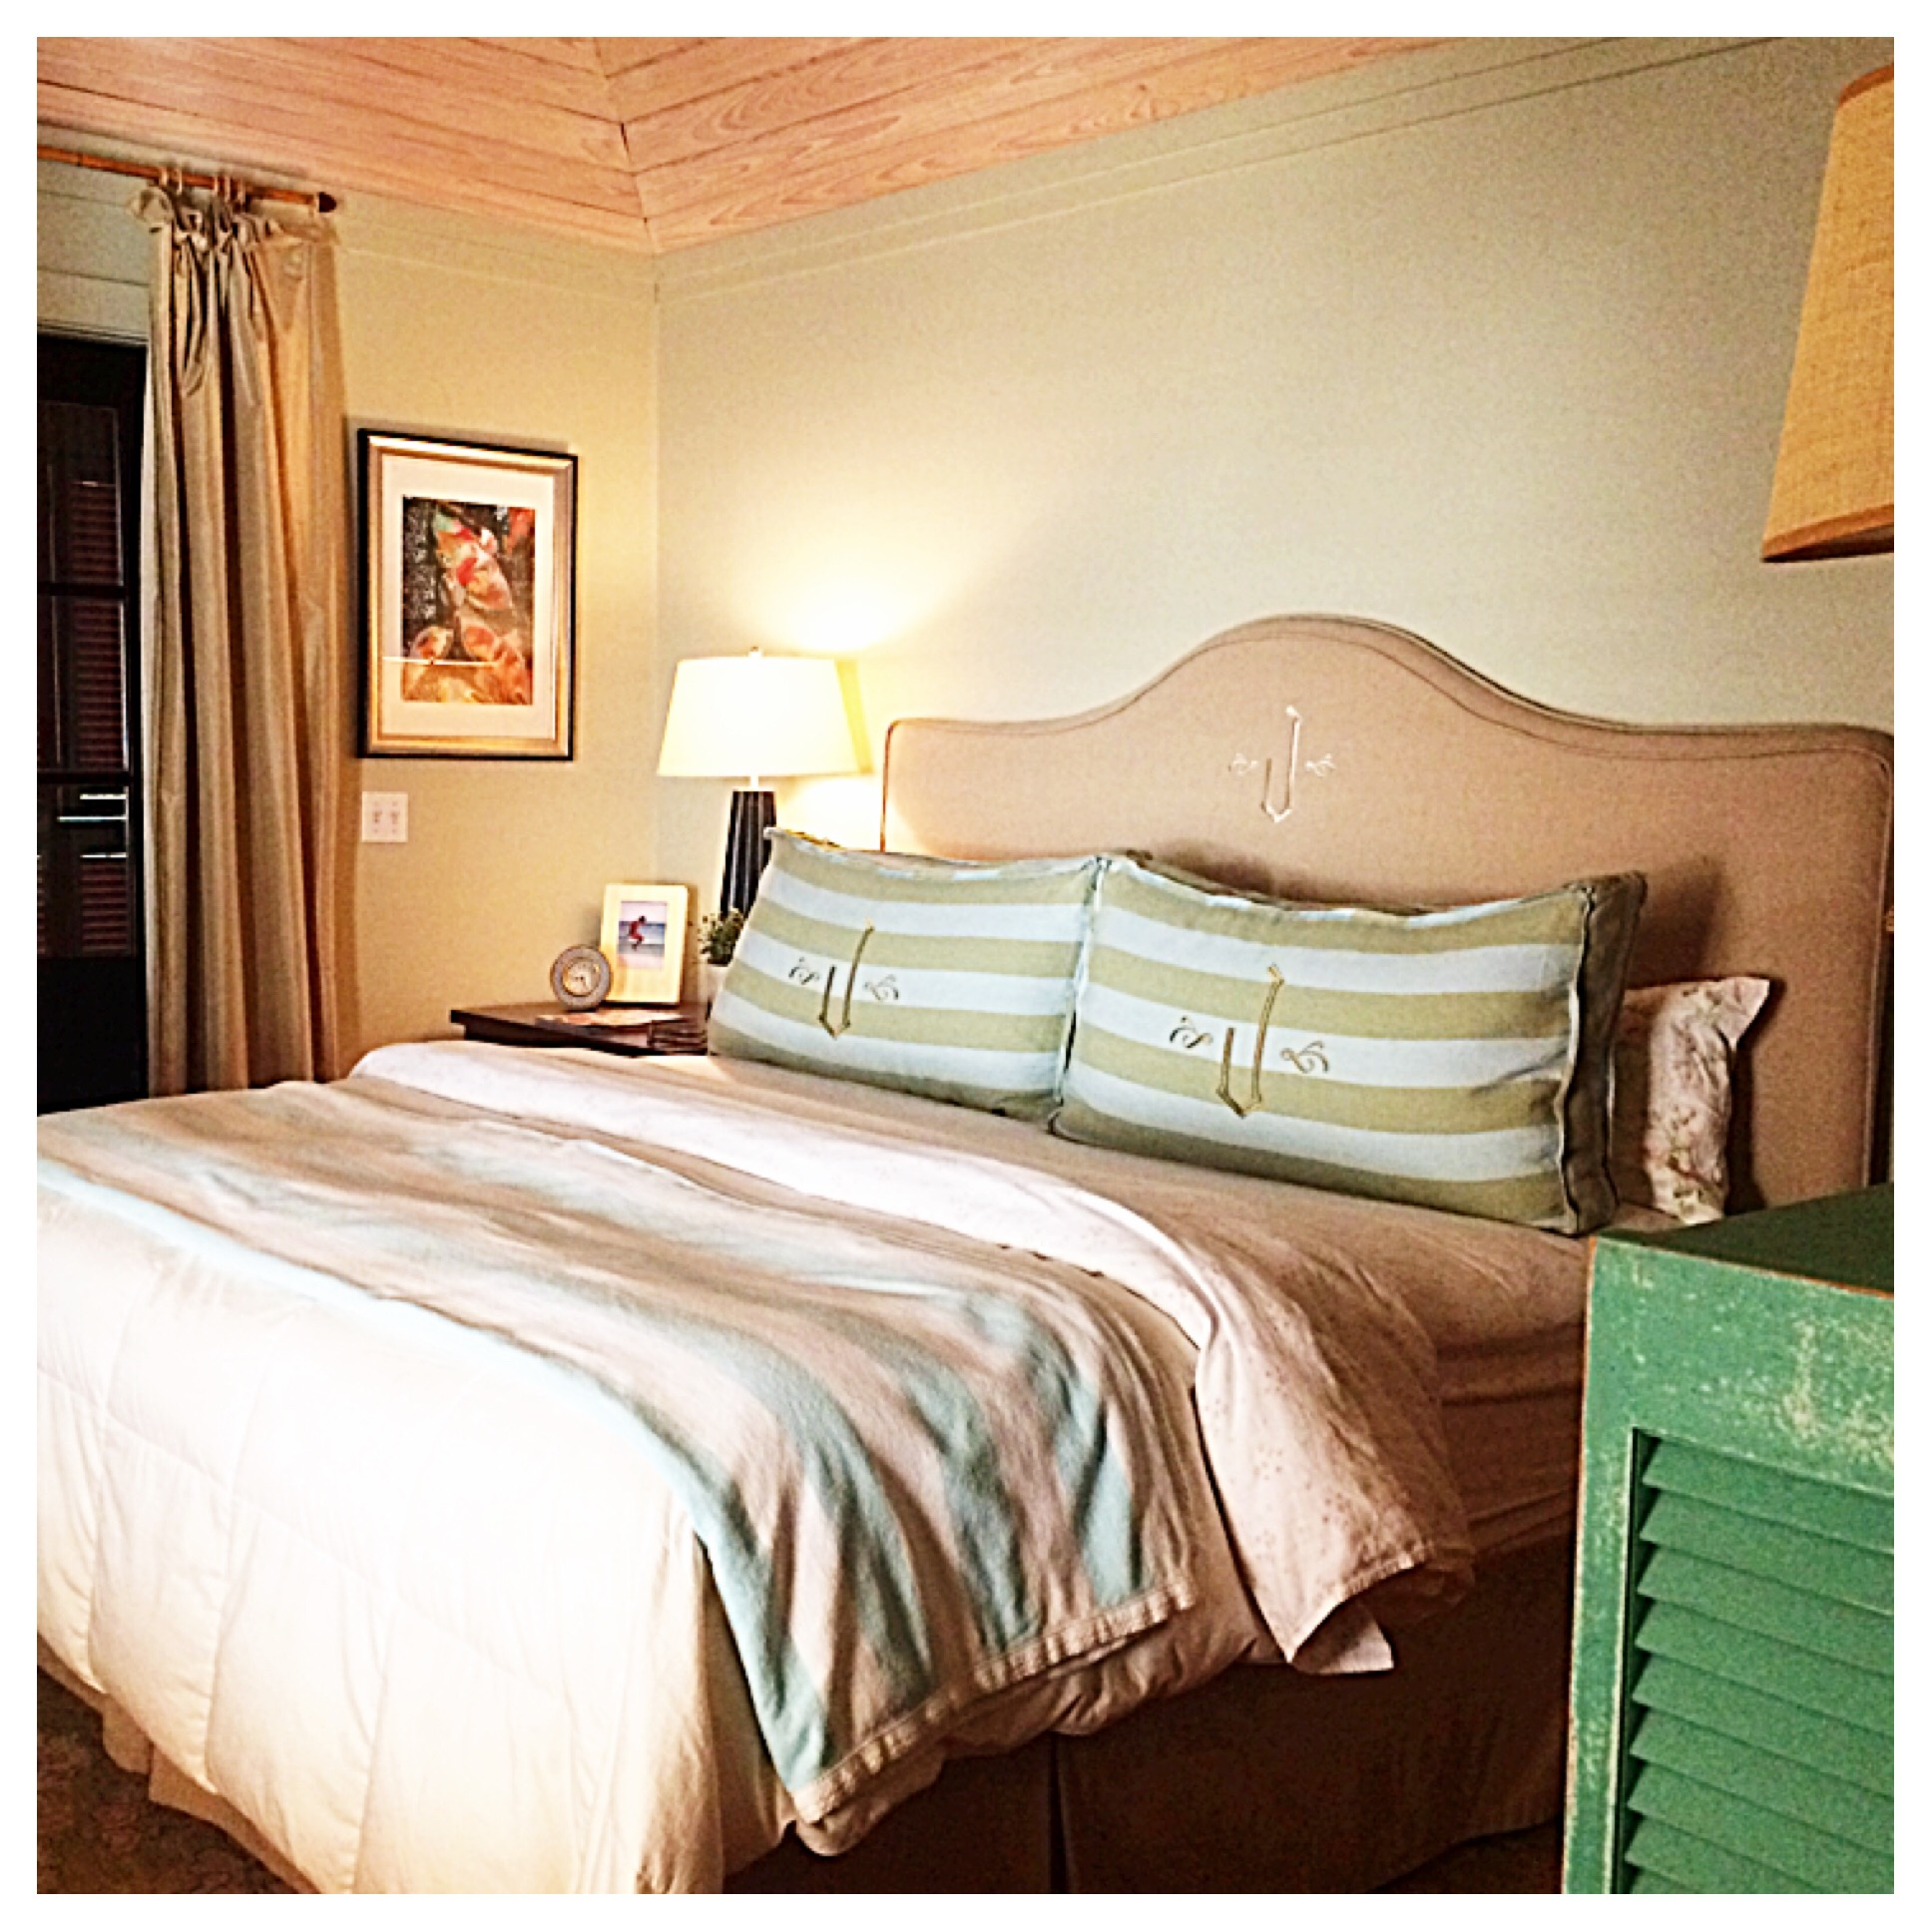 Bedroom at Rosemary Beach